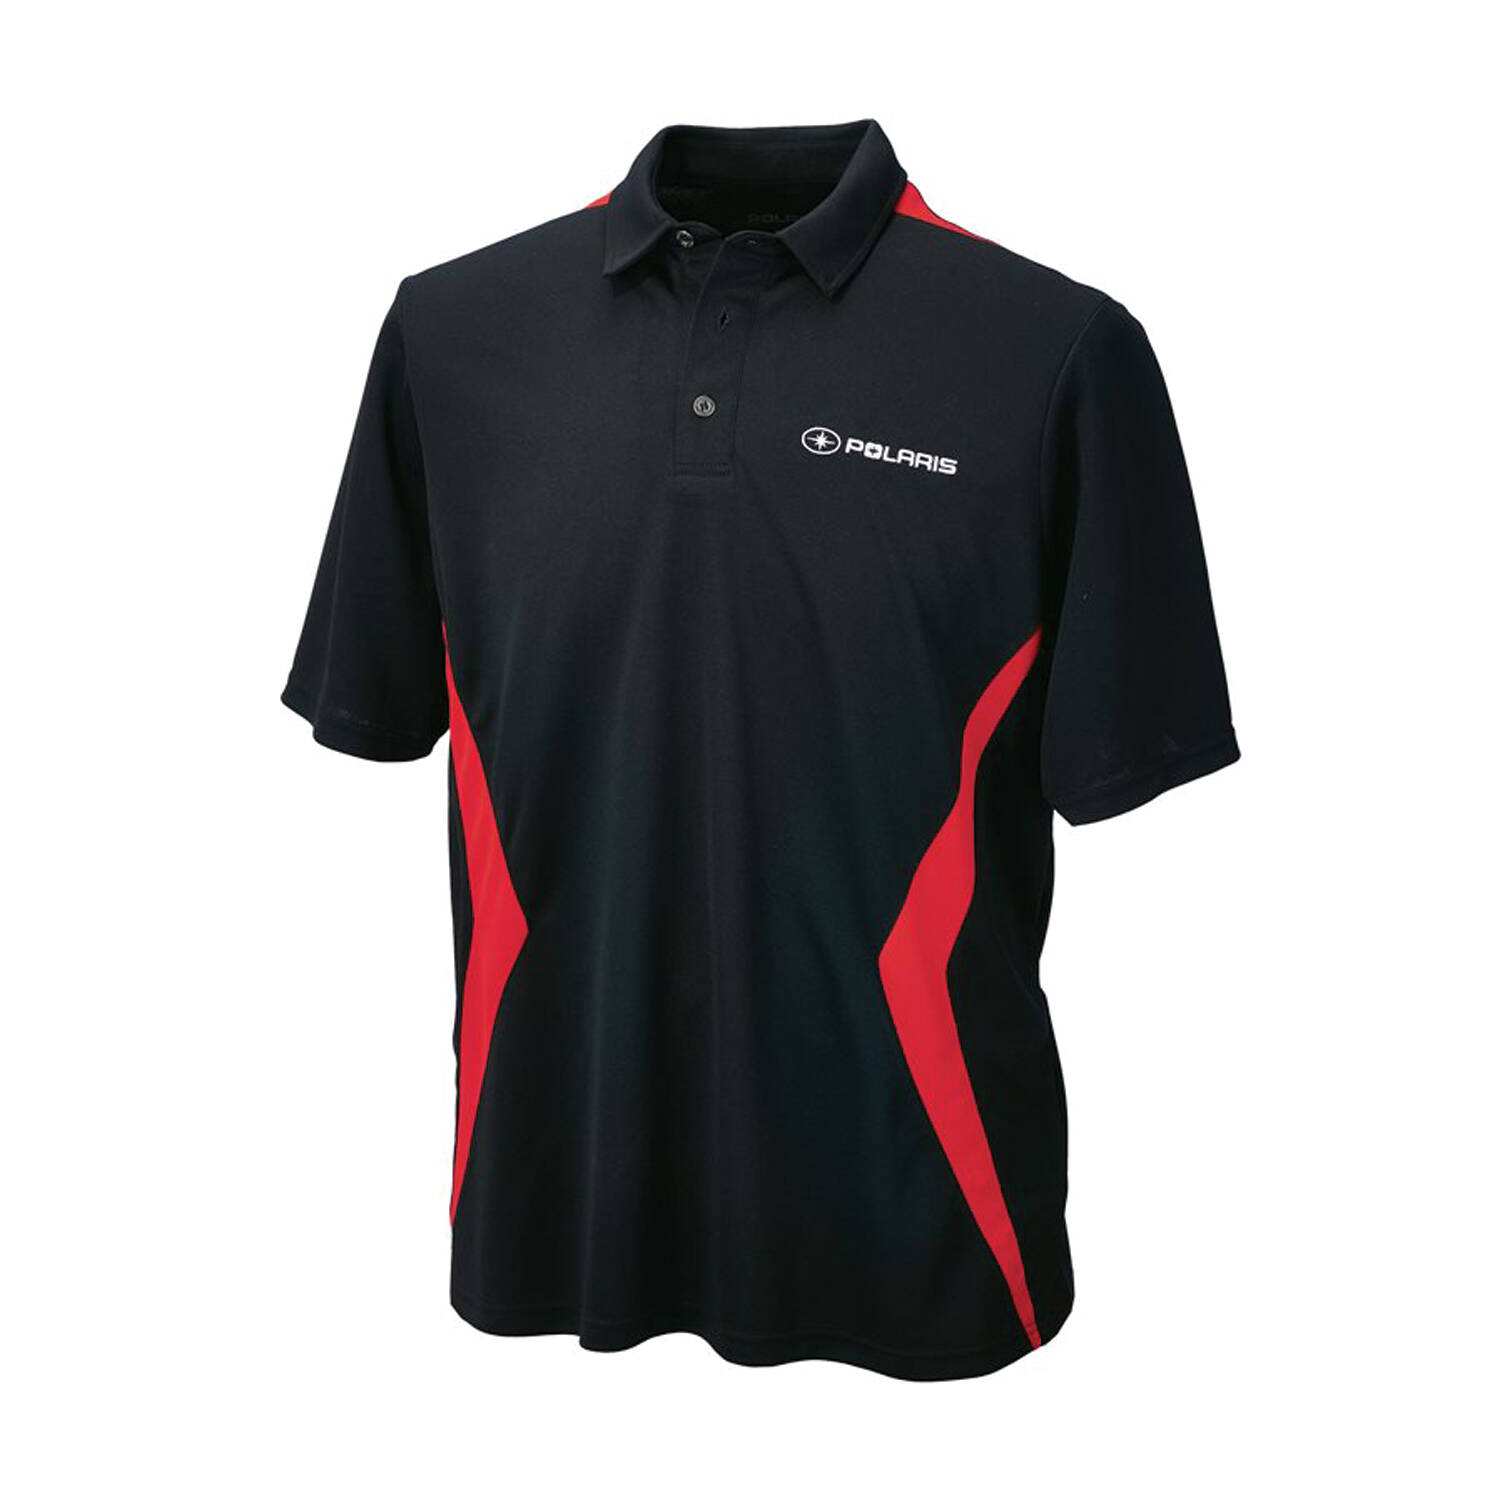 Men's Short-Sleeve Tech Polo with Polaris® Logo, Black/Red